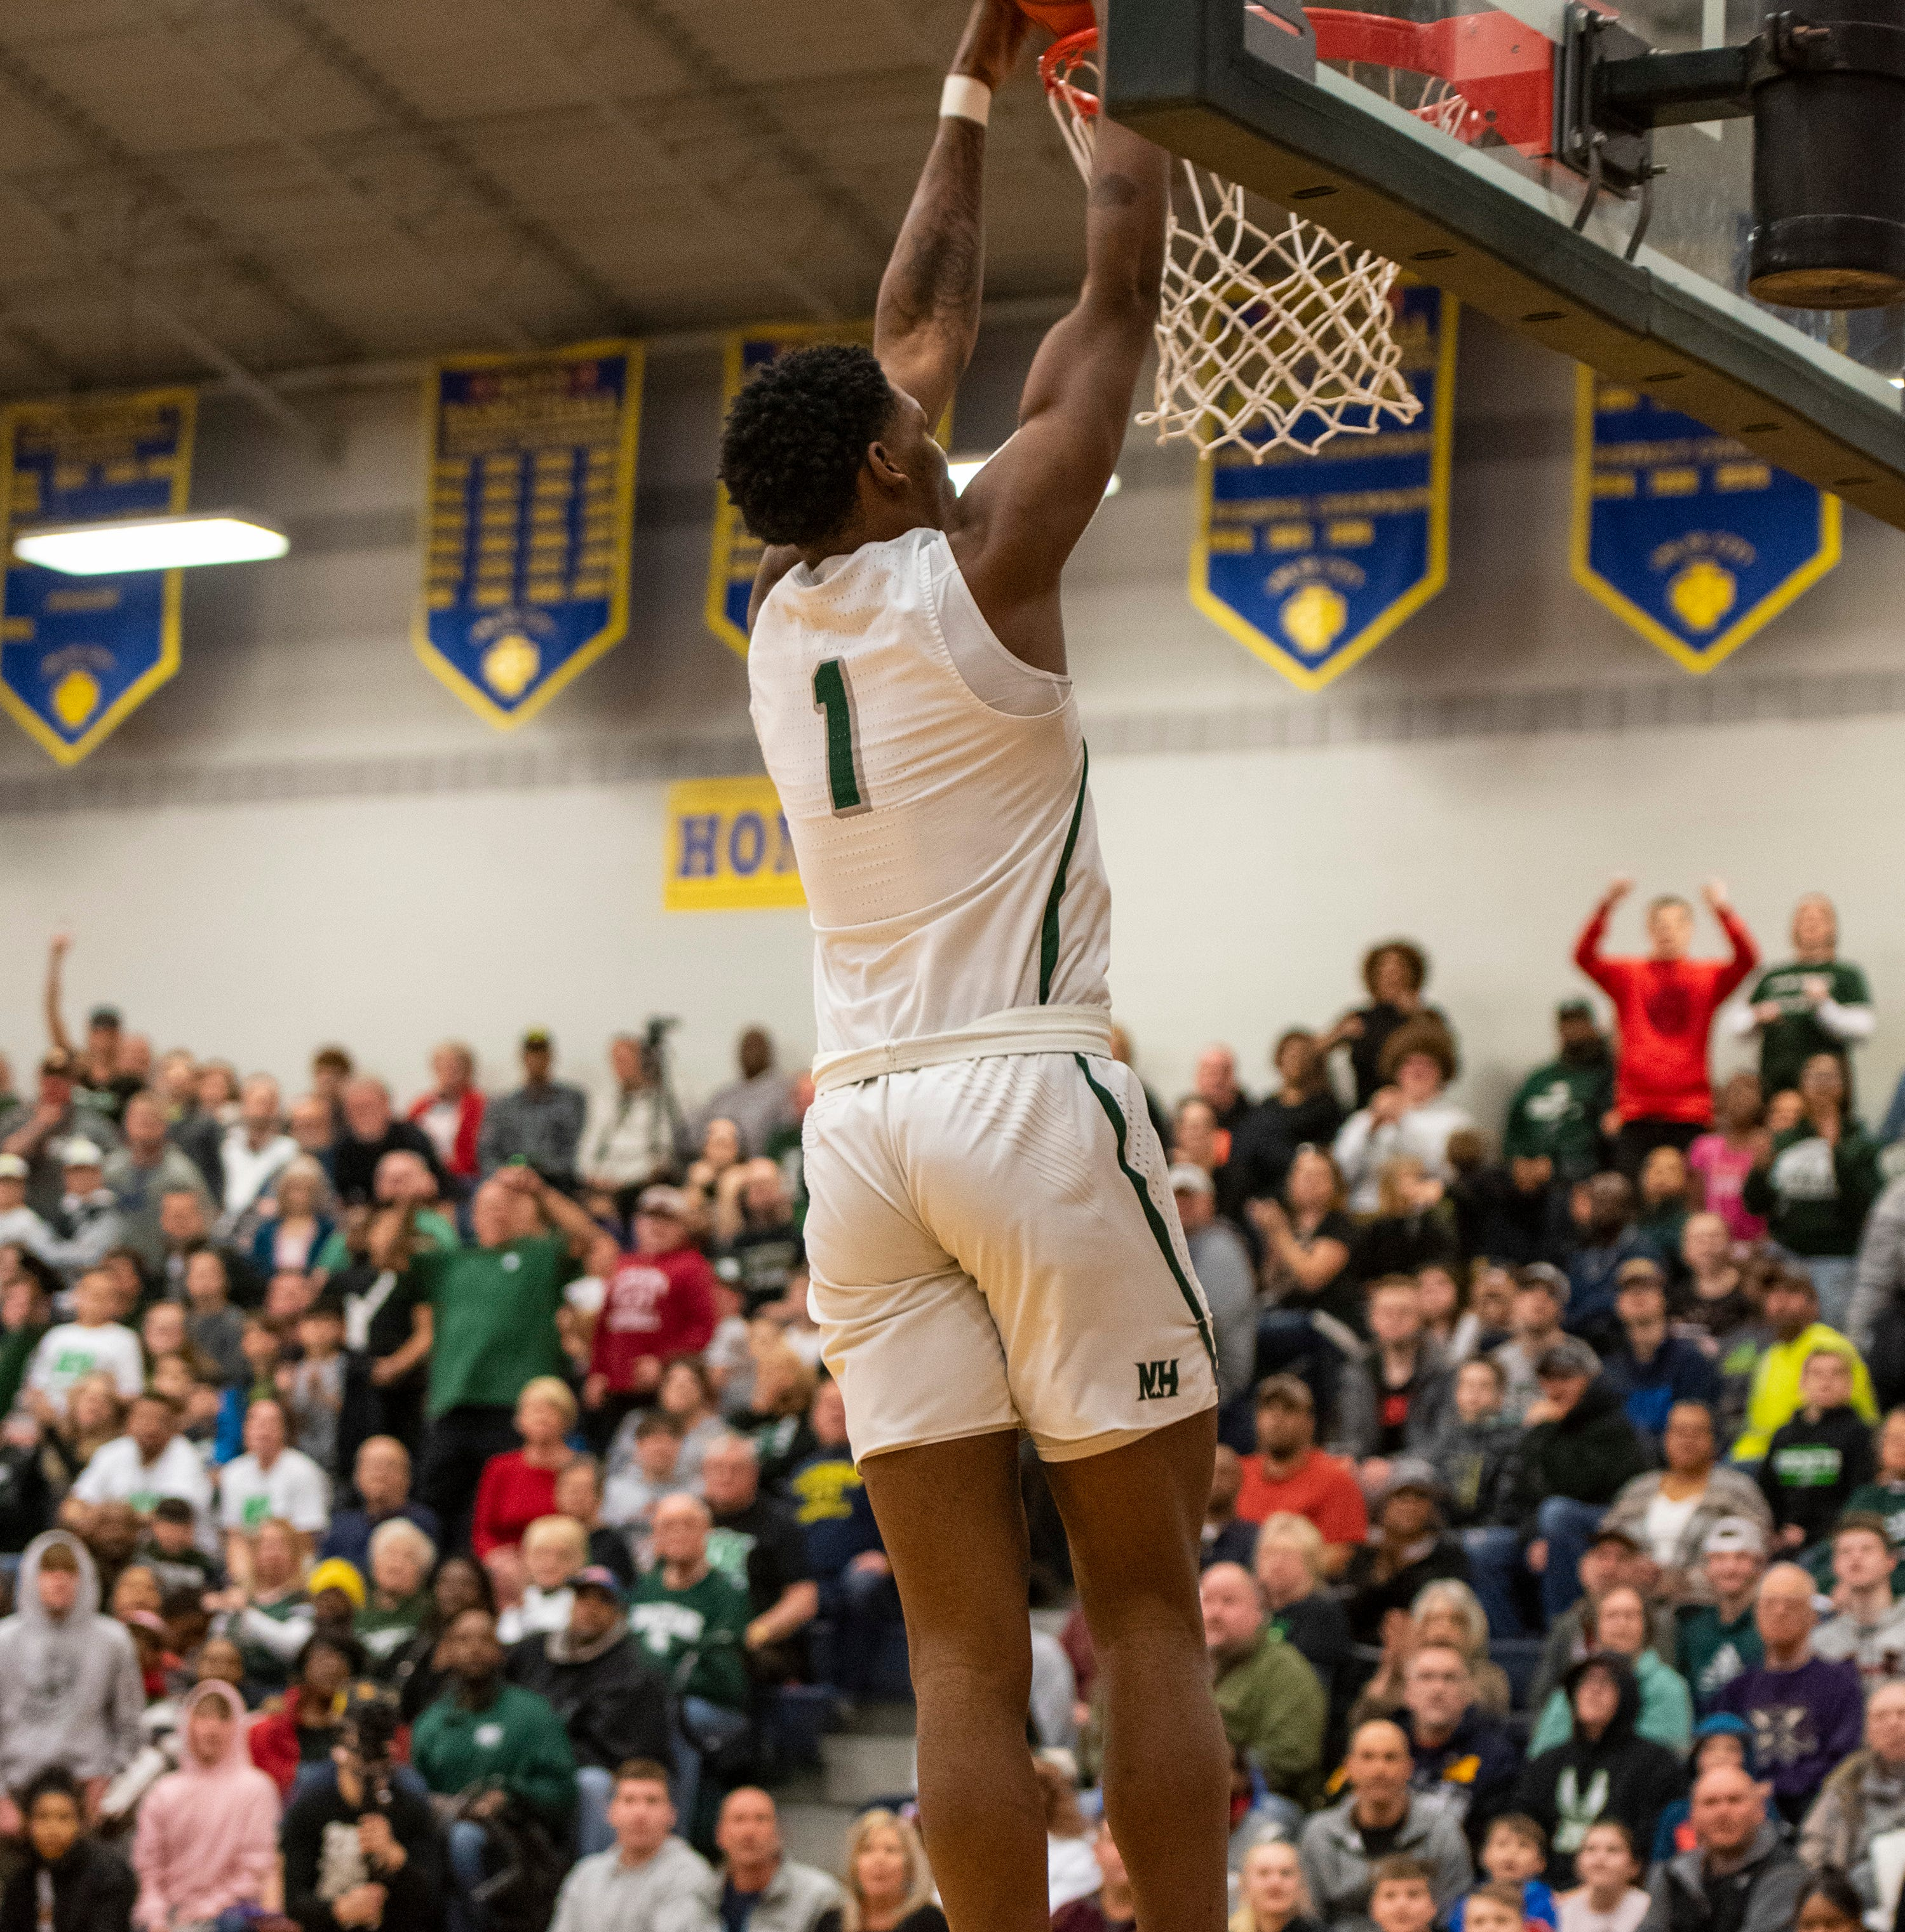 Regional Basketball: New Haven claims fifth straight title